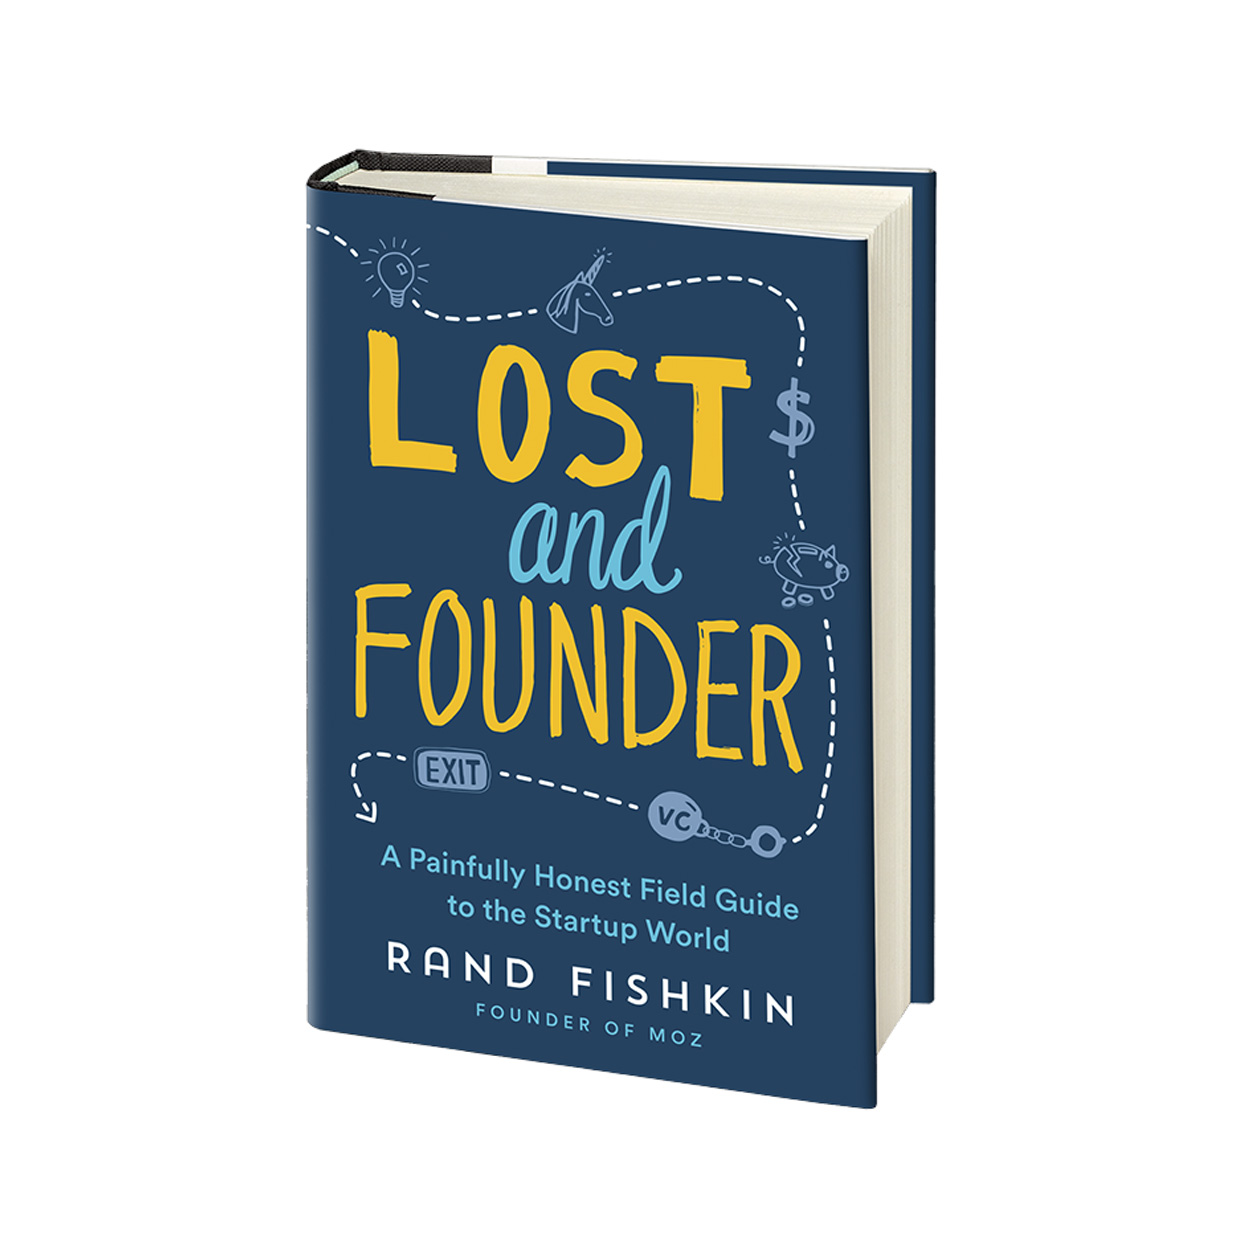 Lost and Founder: A Painful Yet Valuable Read | Kellblog